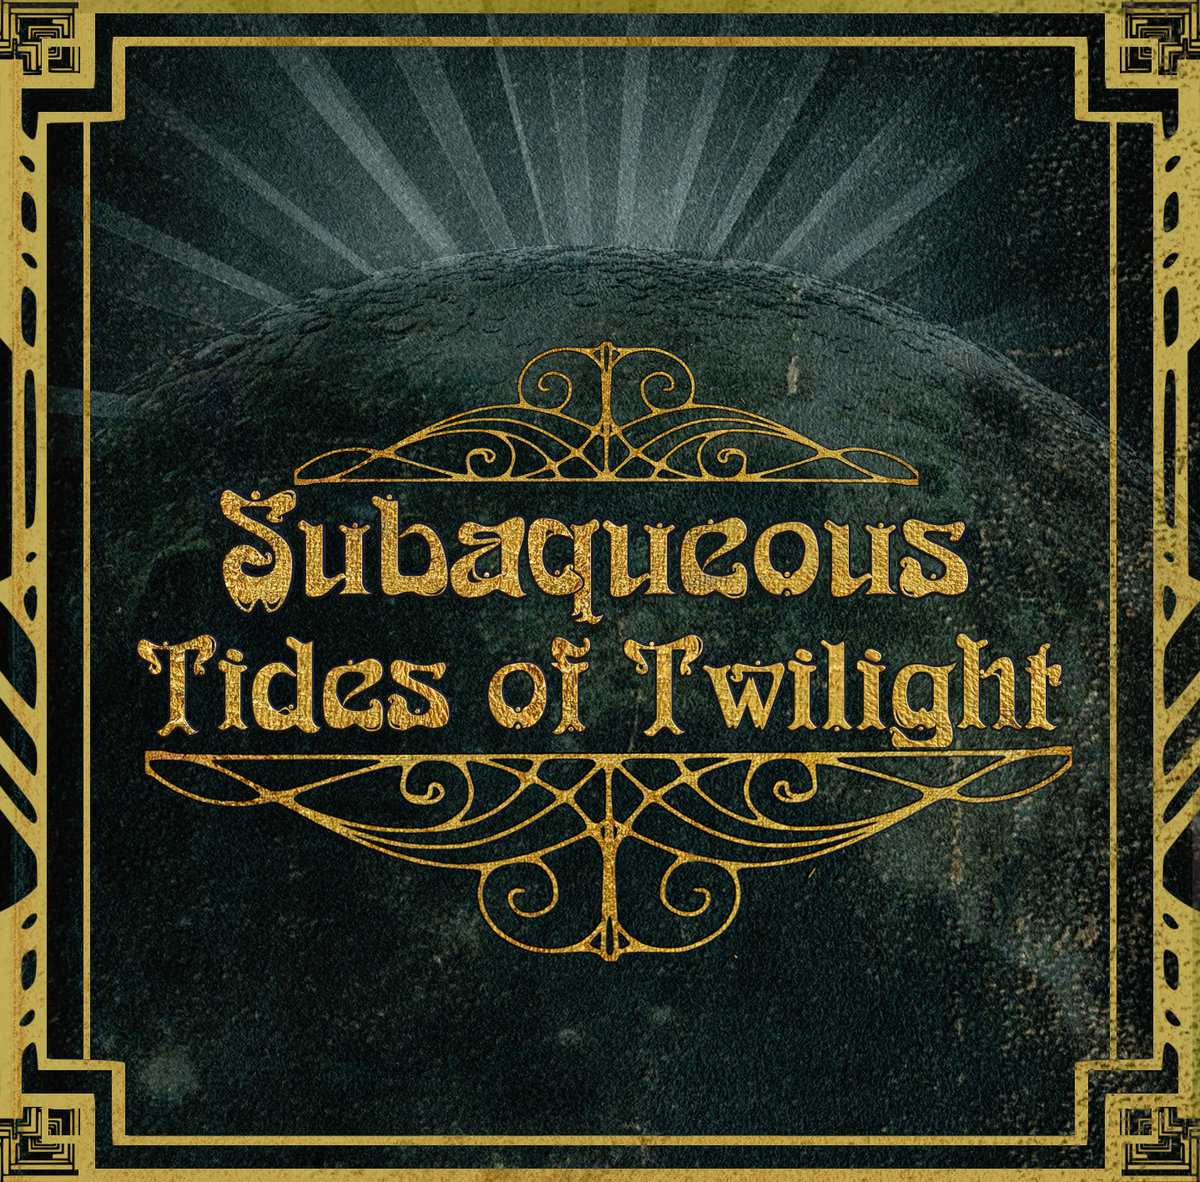 Subaqueous - Tides of Twilight @ 'Tides of Twilight' album (electronic, ambient)